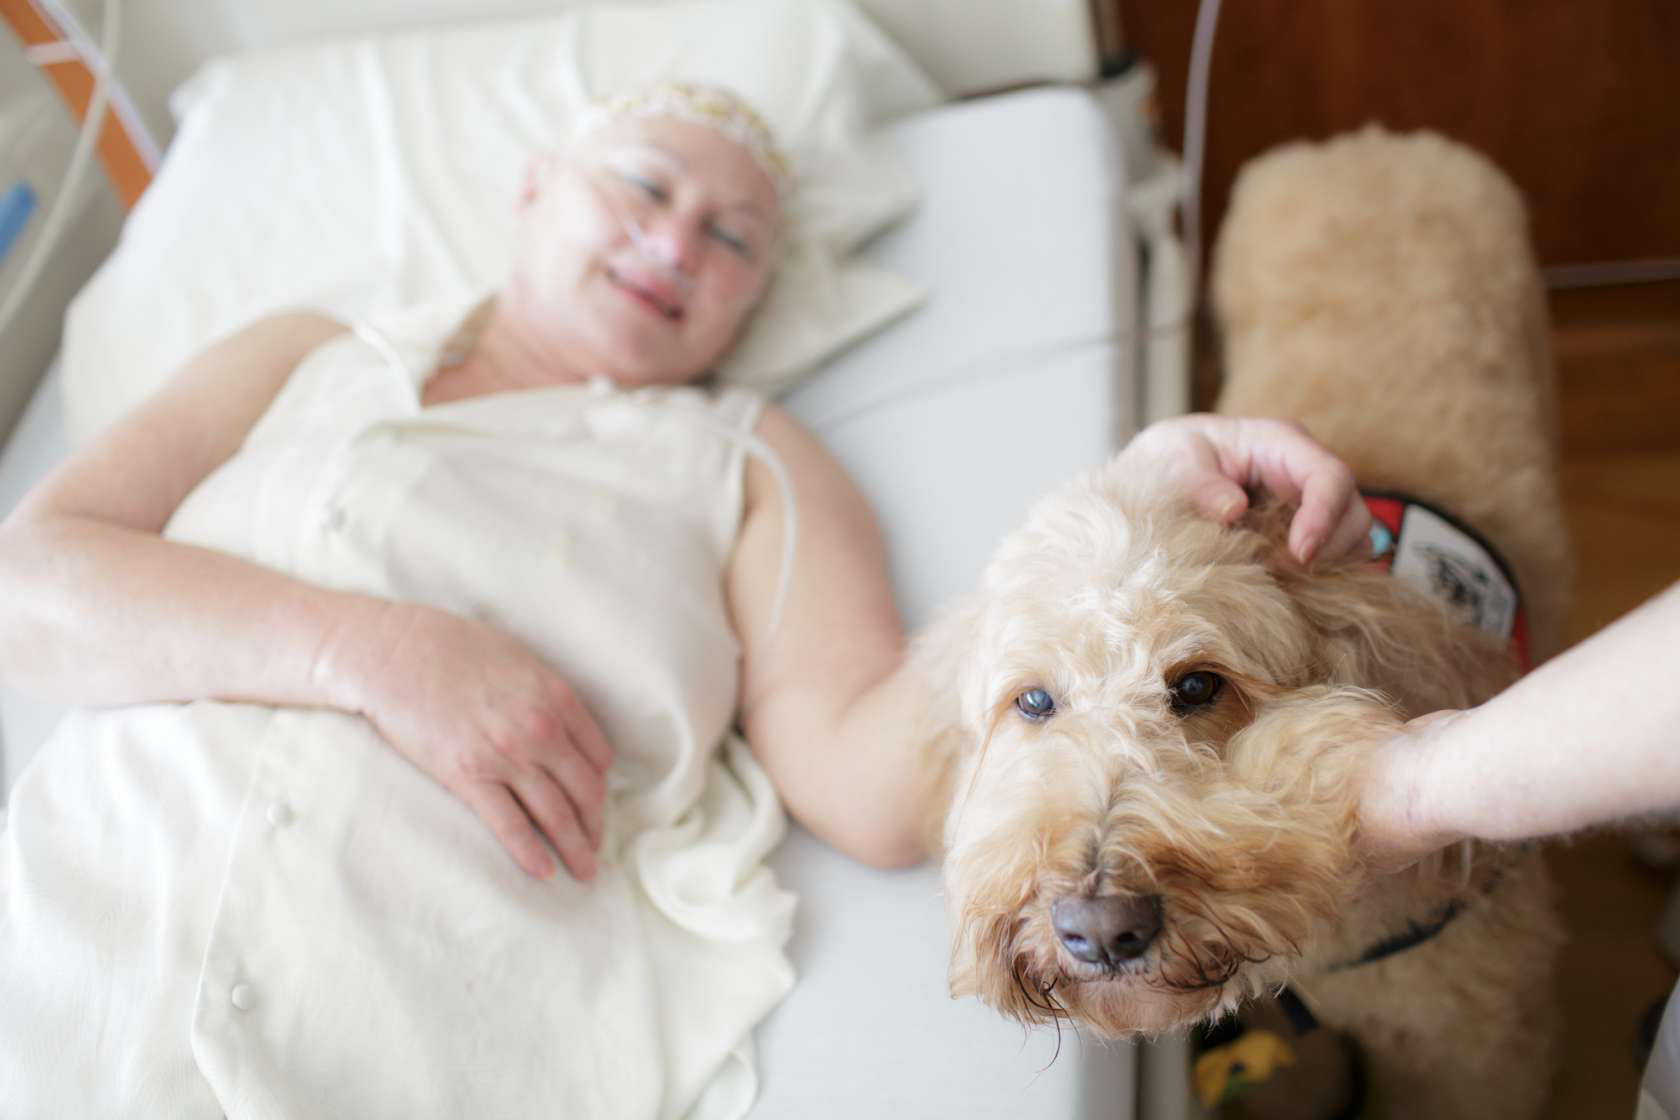 A therapy dog visits a cancer patient in the hospital